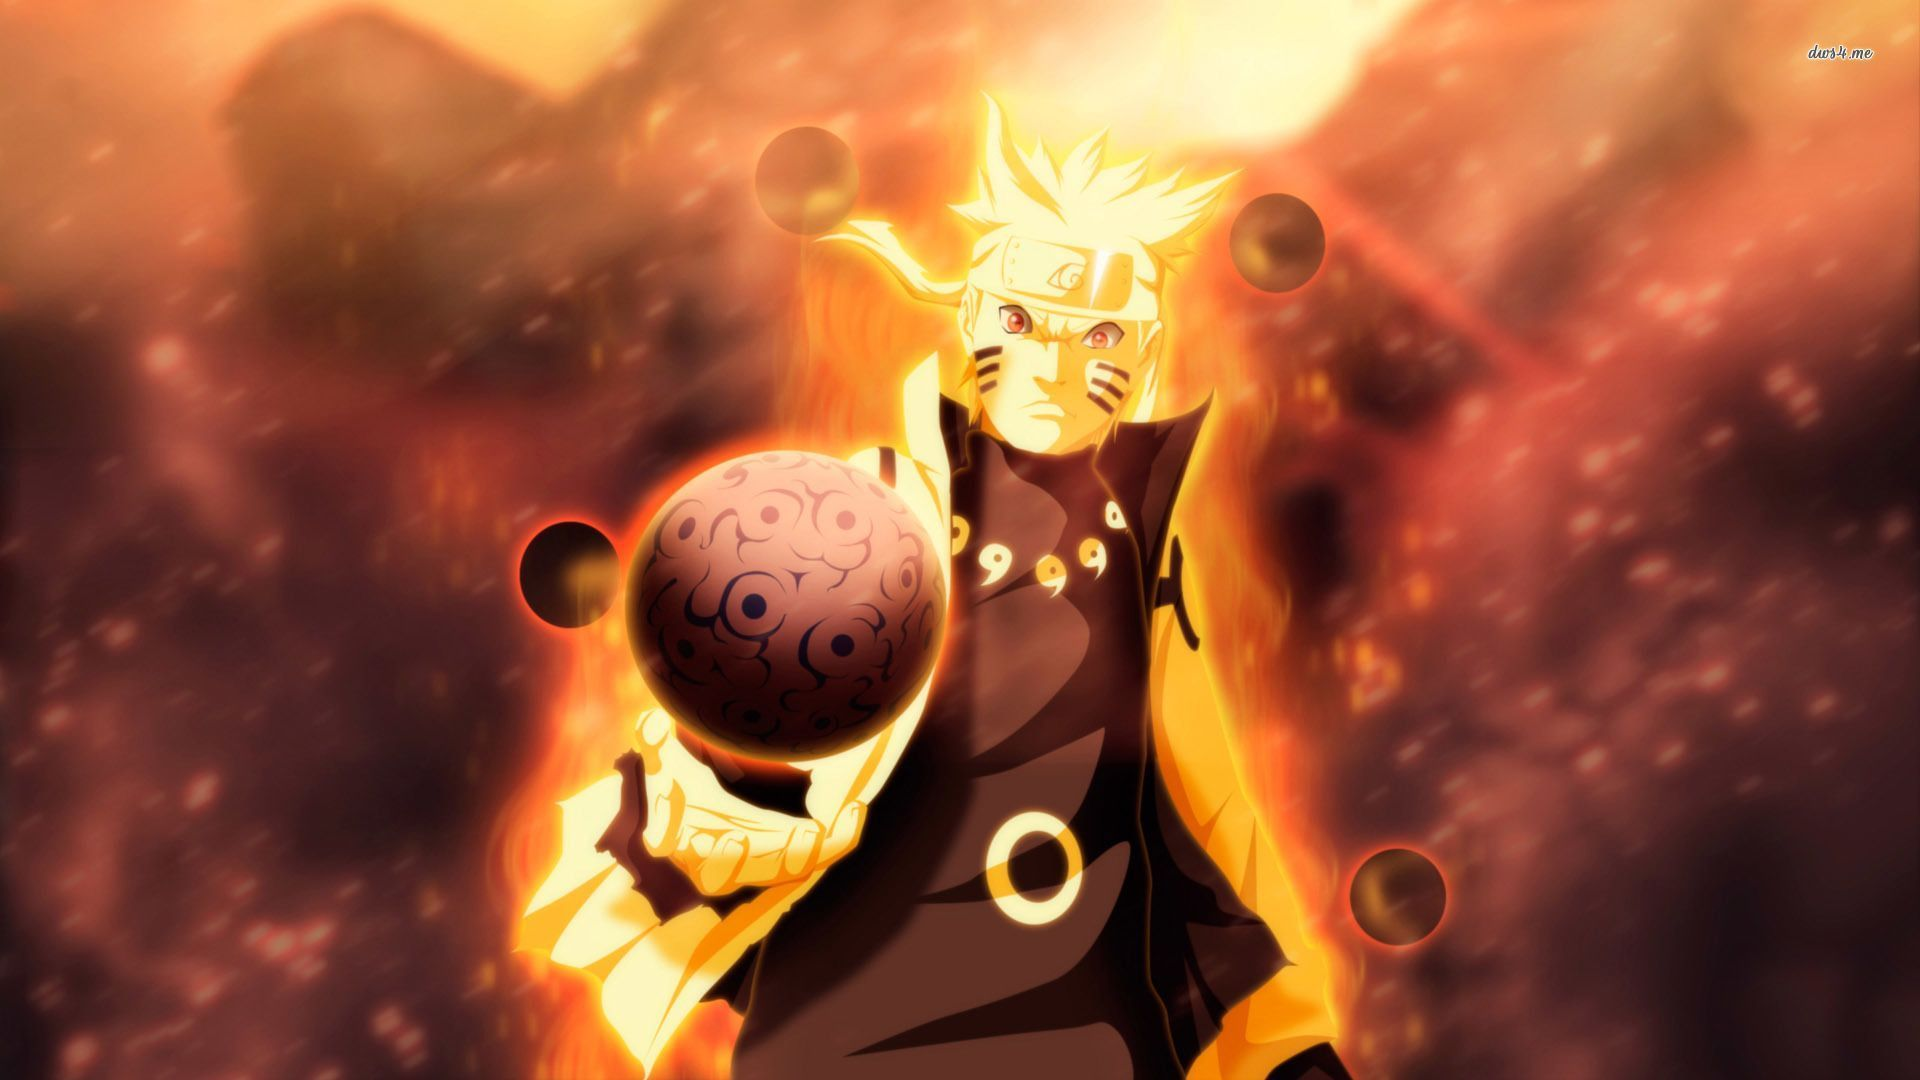 Naruto Wallpapers Epic Epic Naruto Wallpapers Top Free Epic Naruto Backgrounds Naruto Wallpapers 28 In 2020 Best Naruto Wallpapers Naruto Wallpaper Android Wallpaper